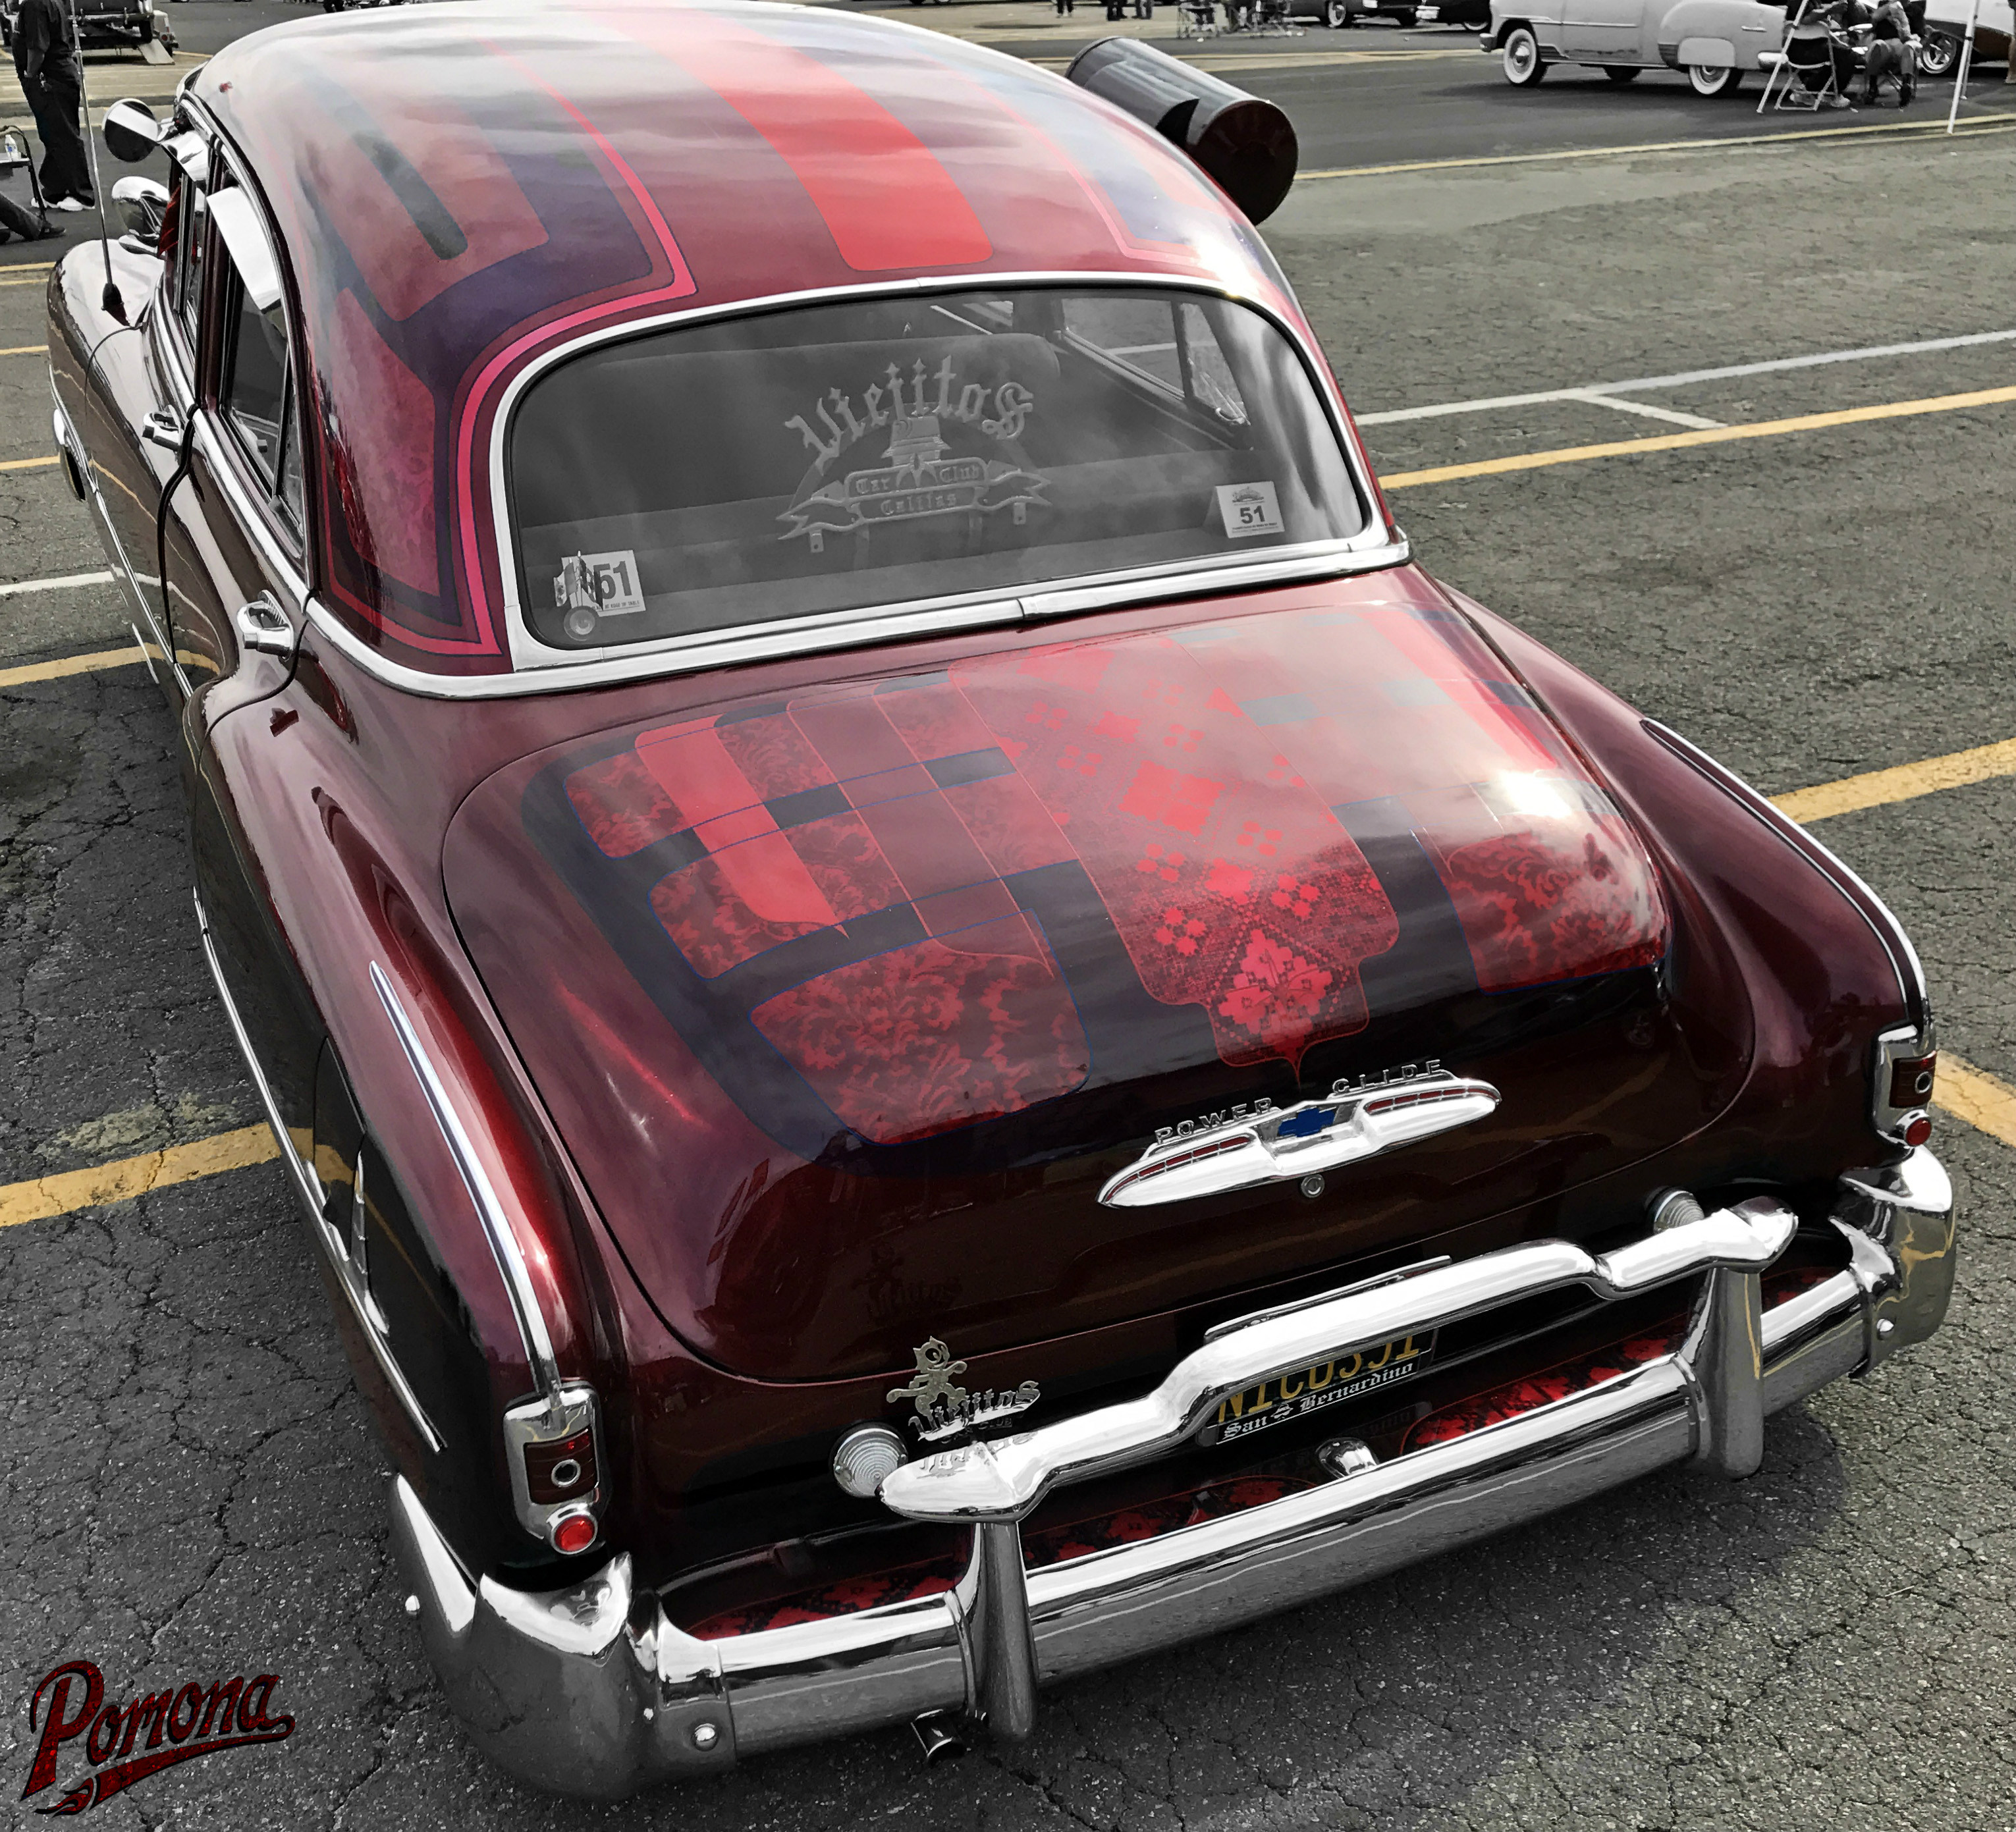 1951 Chevy from the Viejitos Car Club